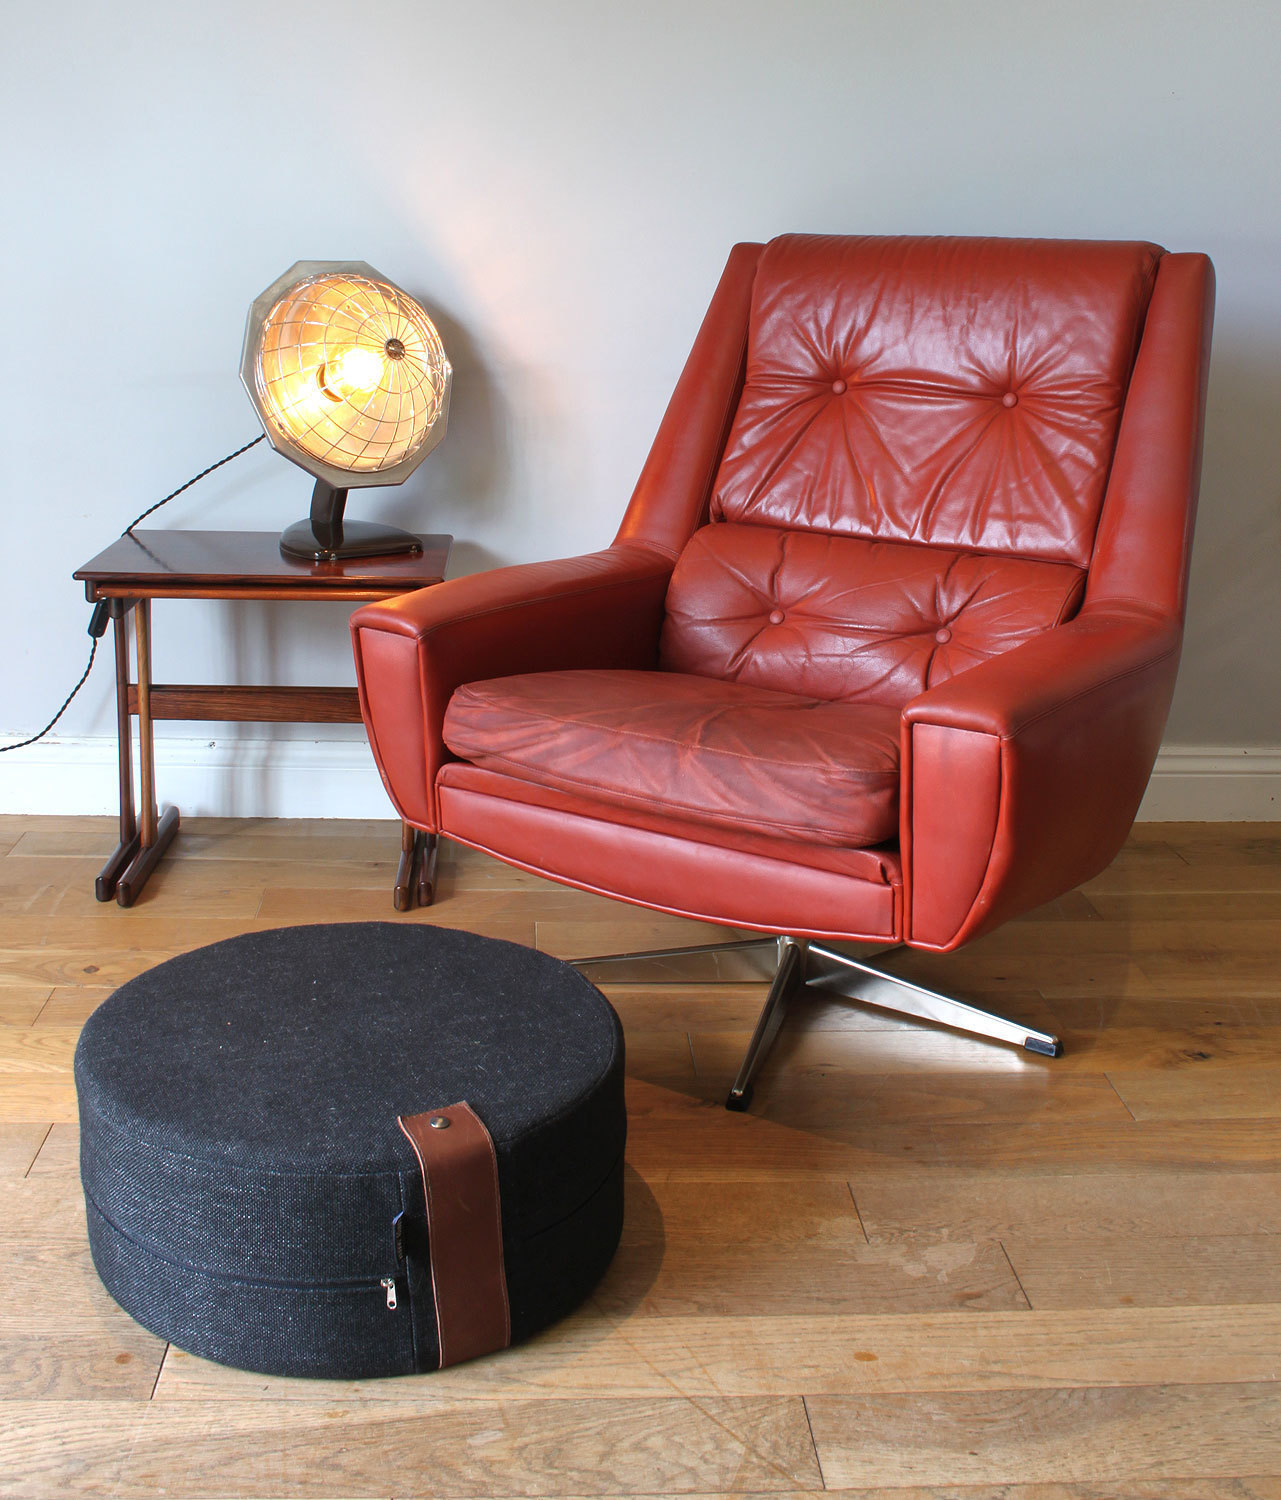 Sensational Original Danish Midcentury 1970S Red Brown Leather Swivel Chair Creativecarmelina Interior Chair Design Creativecarmelinacom